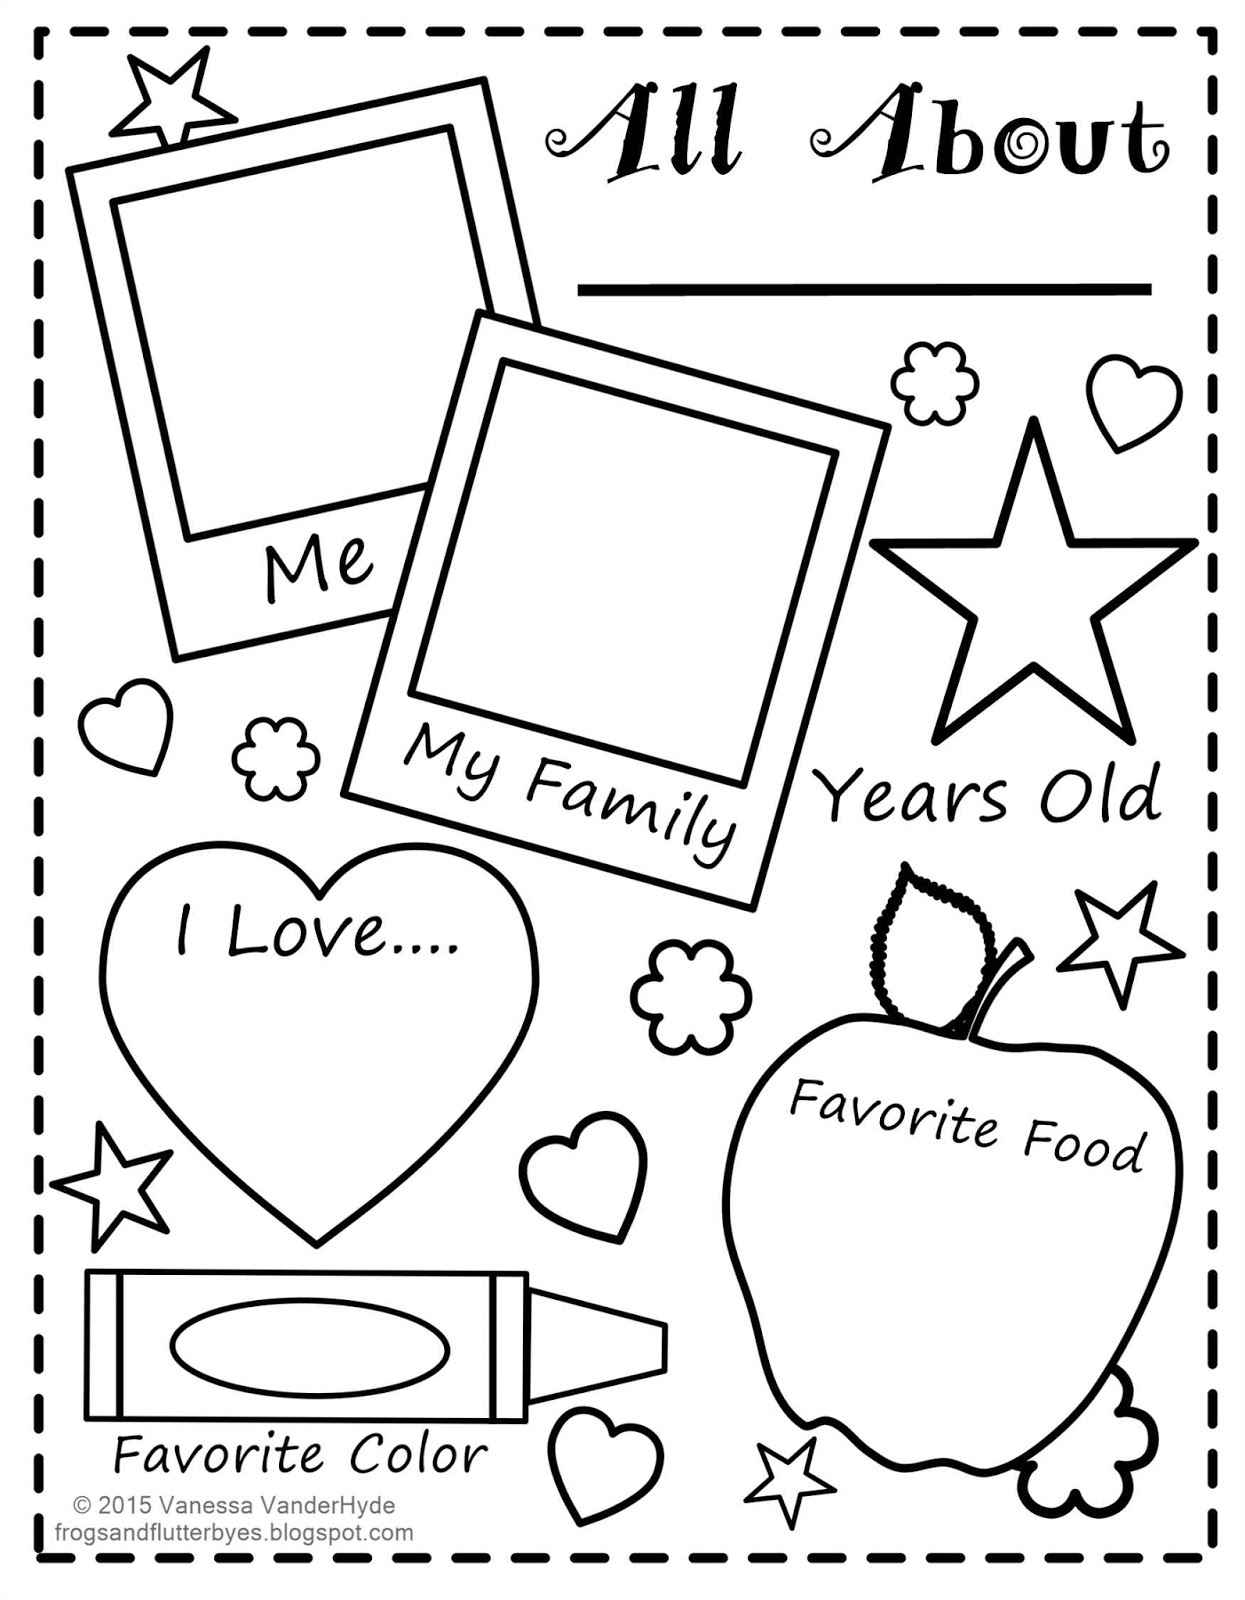 All About Me Worksheet All About Me Free Printable Worksheets - Free Printable All About Me Worksheet